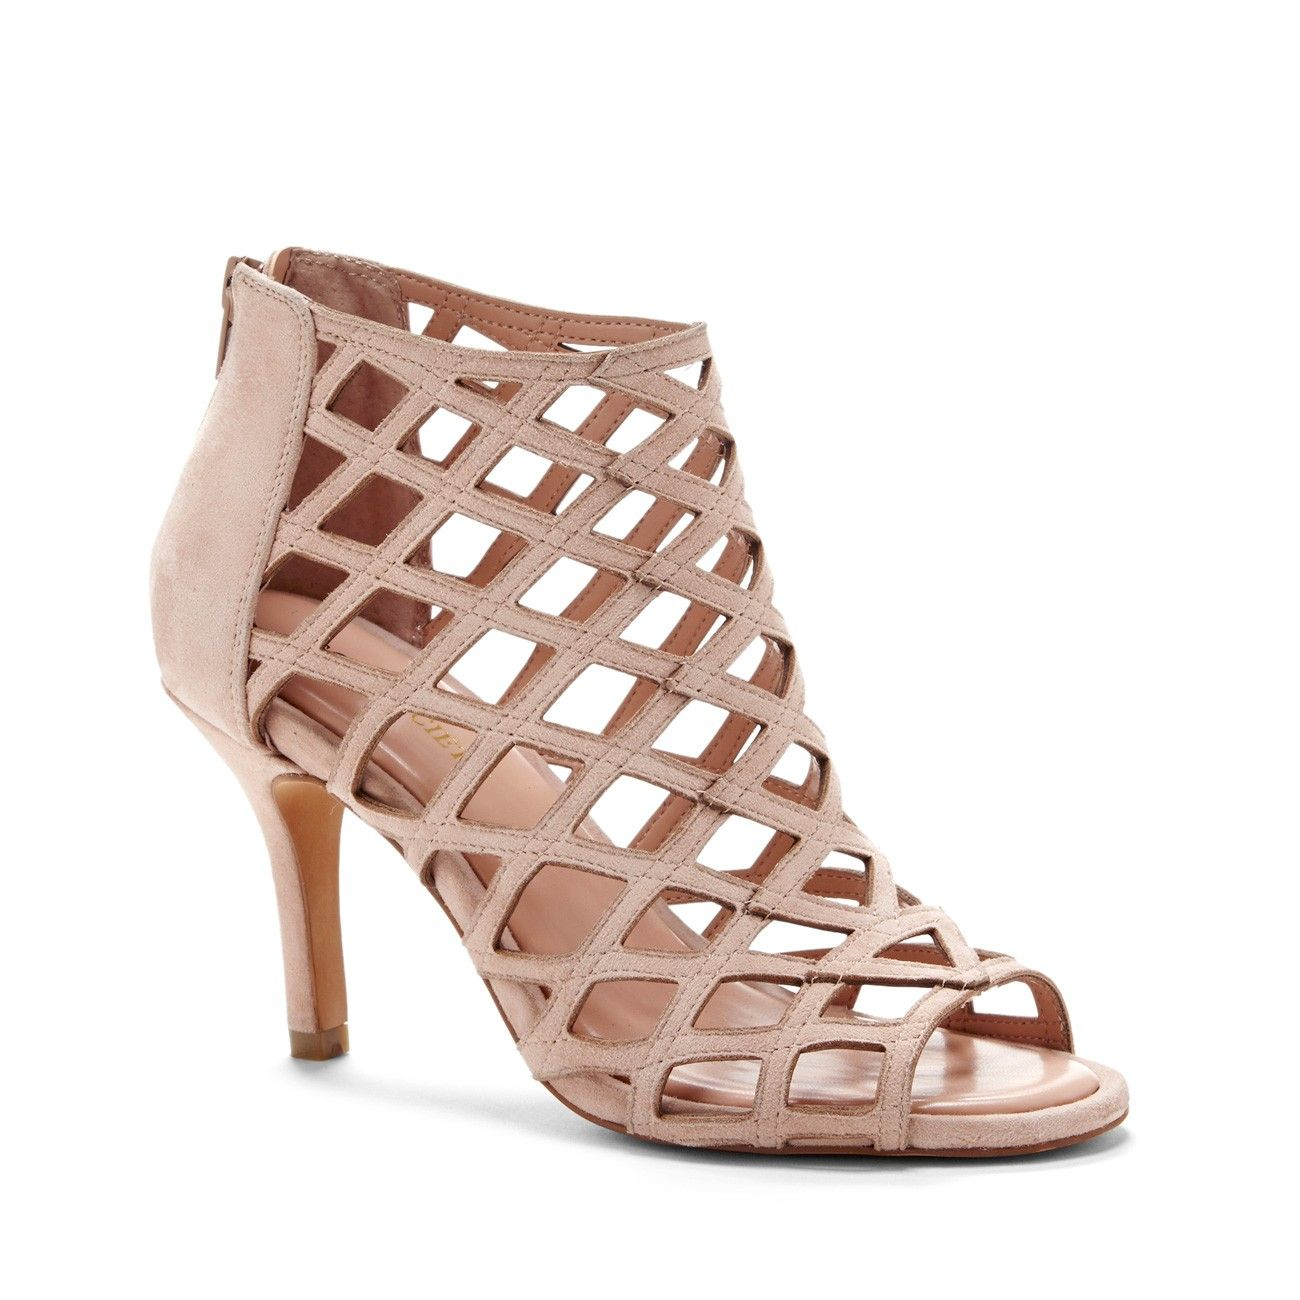 7d3d6e86466e Sole Society - Women s Shoes at Surprisingly Affordable Prices.  79.95.  Black and navy too. Size 4 sold out in all colors.